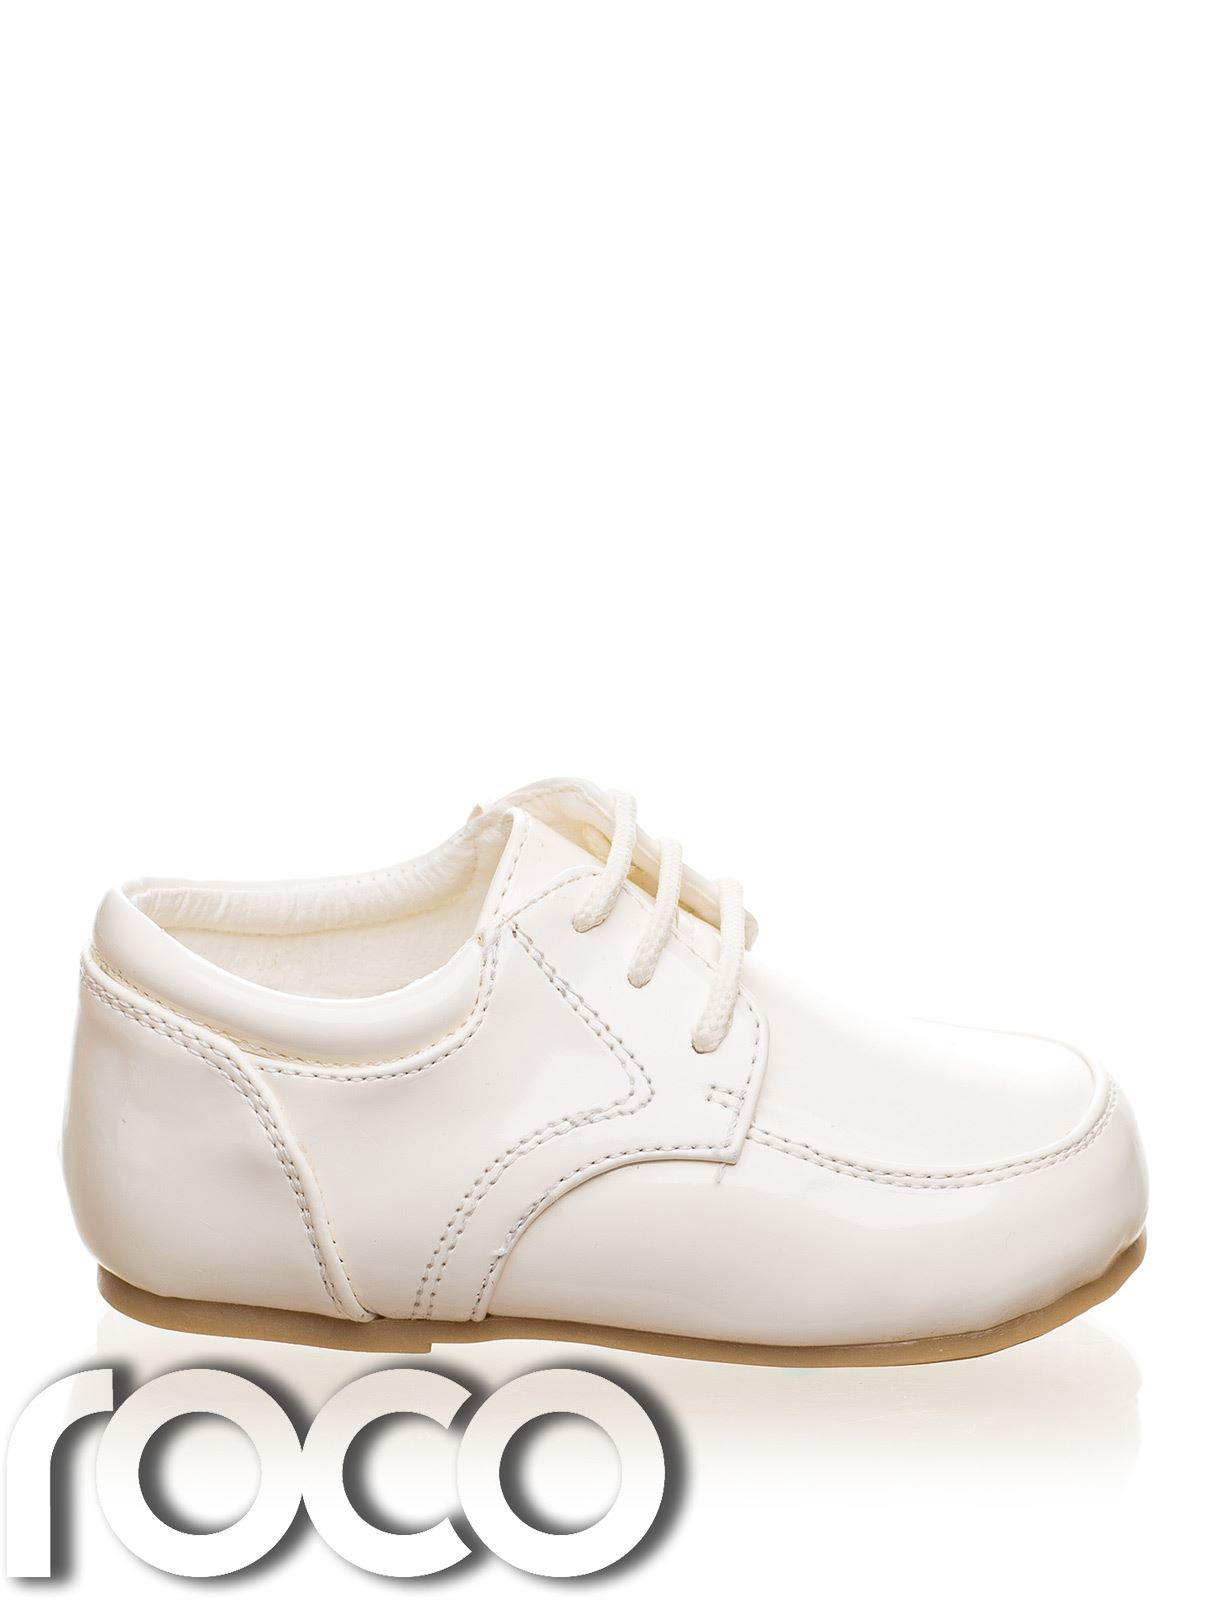 Childrens Baby Boys White Shoes Lace Up Wedding